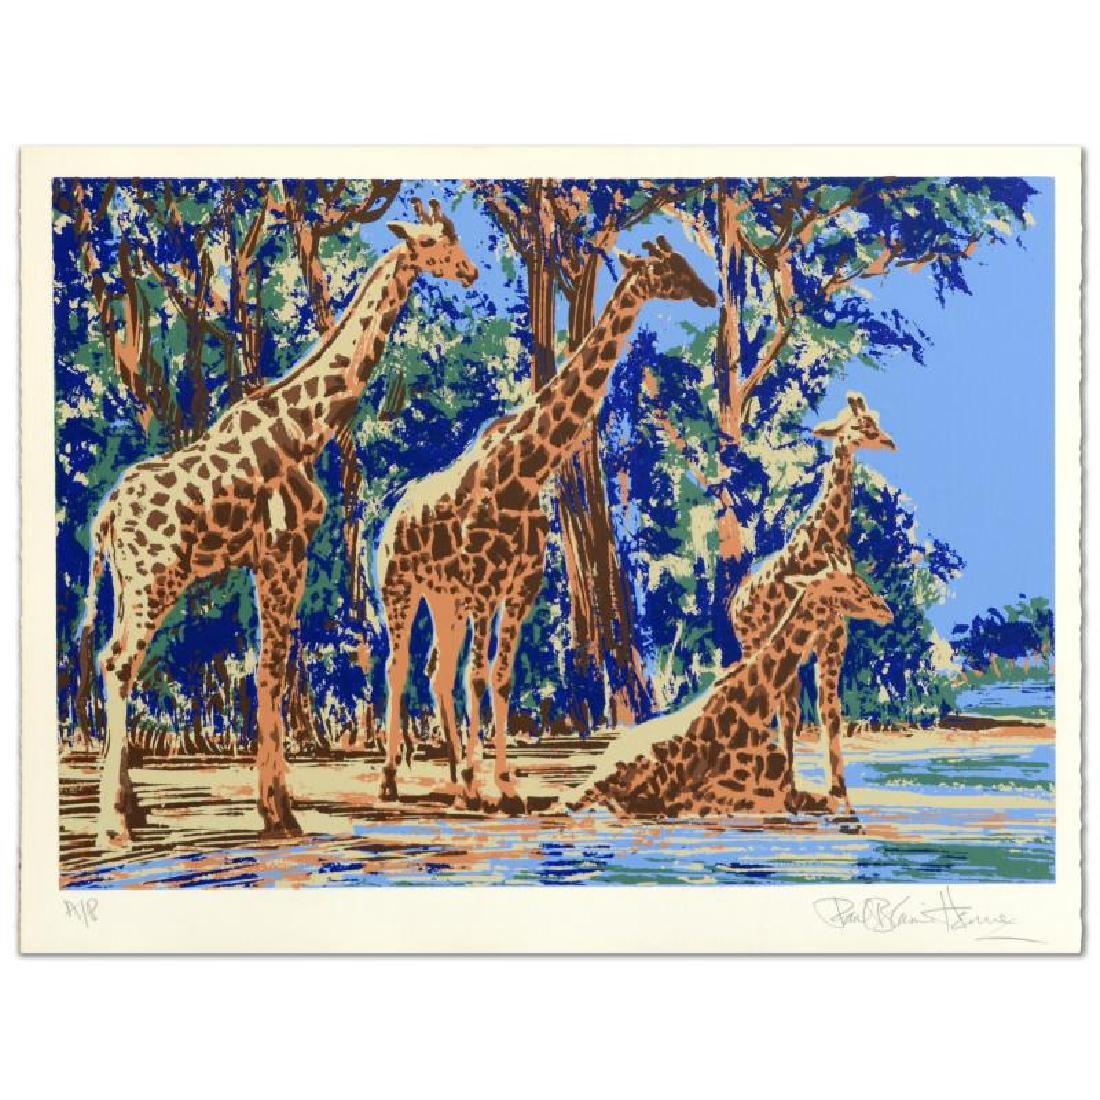 Giraffe Lake Limited Edition Serigraph by Paul Blaine